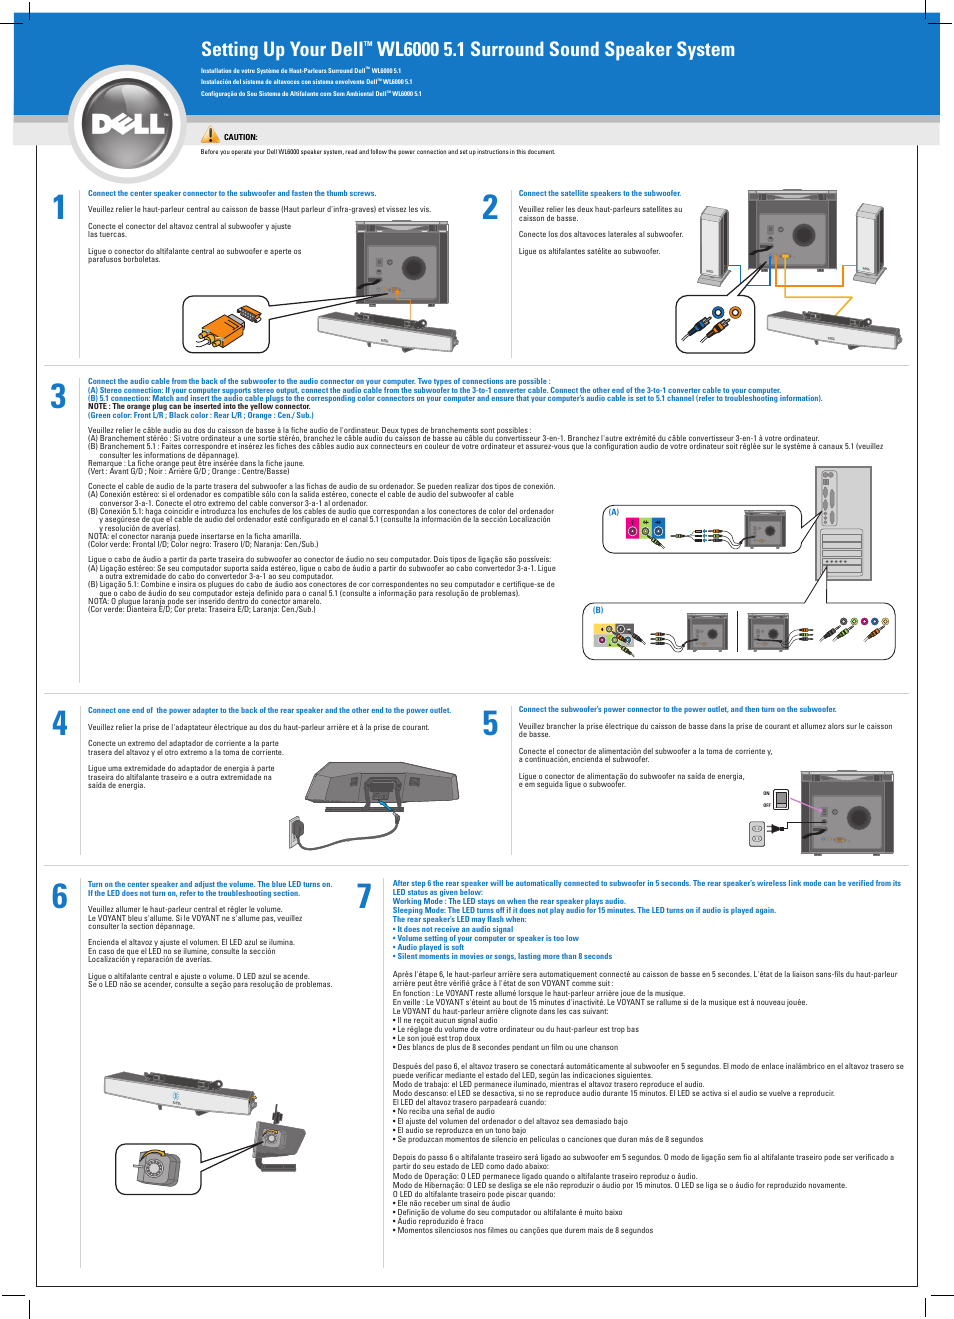 Dell Wl W Surround Speaker System With Ghz Wireless Rear Channels And Subwoofer Page on Yamaha Speaker Manuals